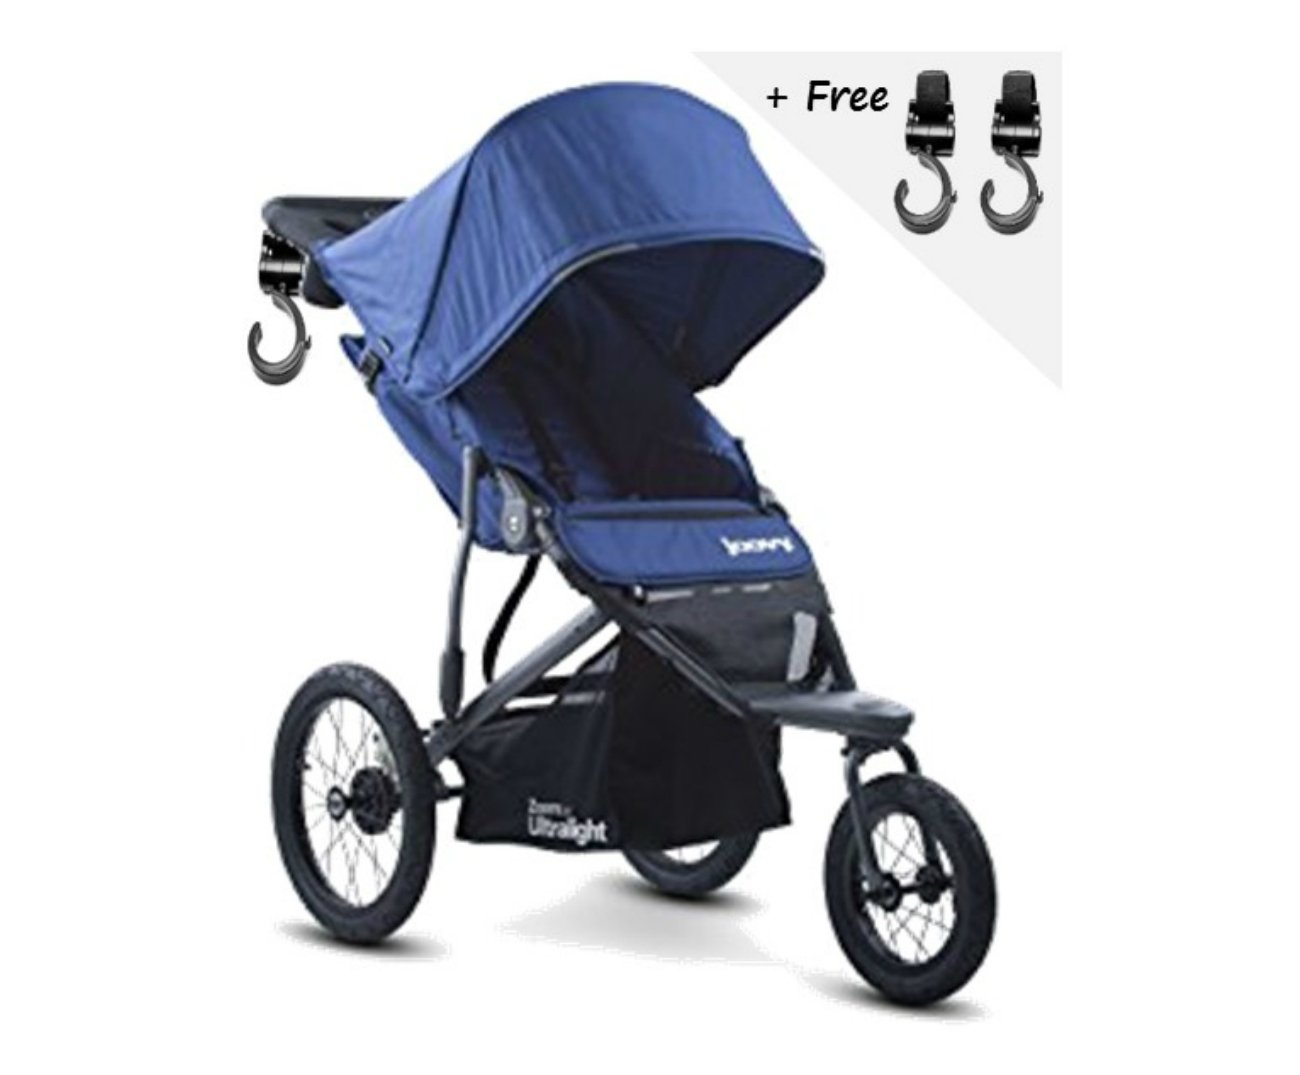 Premium JOGGER ULTRALIGHT Baby Strollers, Car Seat Compatible, Umbrella, Travel Systems Ready! For Infants, Toddlers And Kids, Blueberry Color + 2 Free Strap-on Handy Hooks!